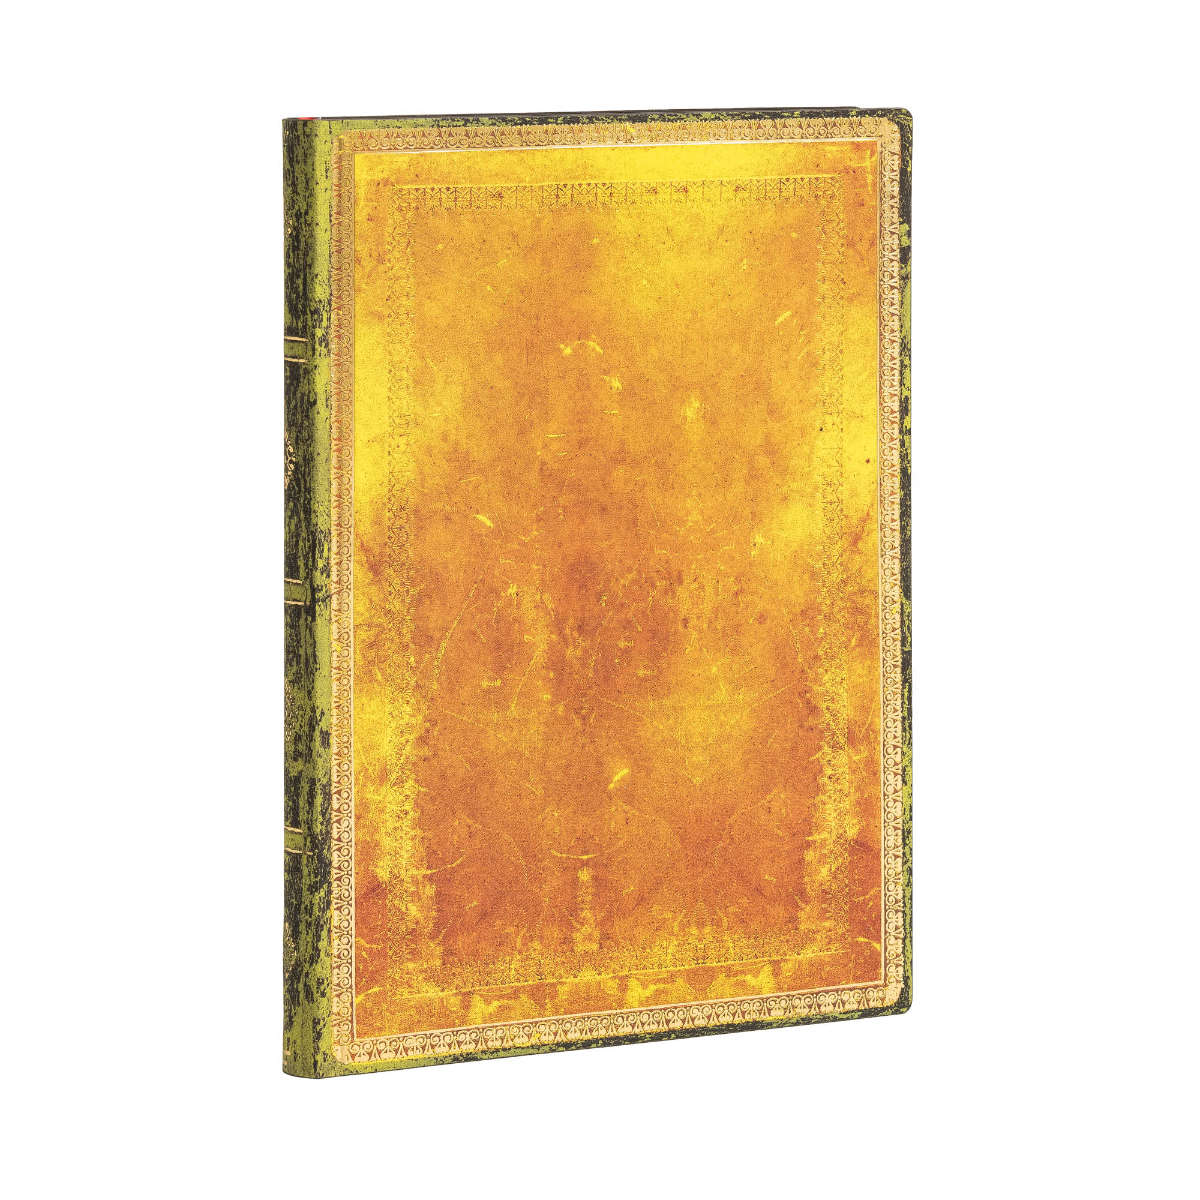 Paperblanks Flexis Old Leather Ochre Midi 5x7 Inch, 176 Pages